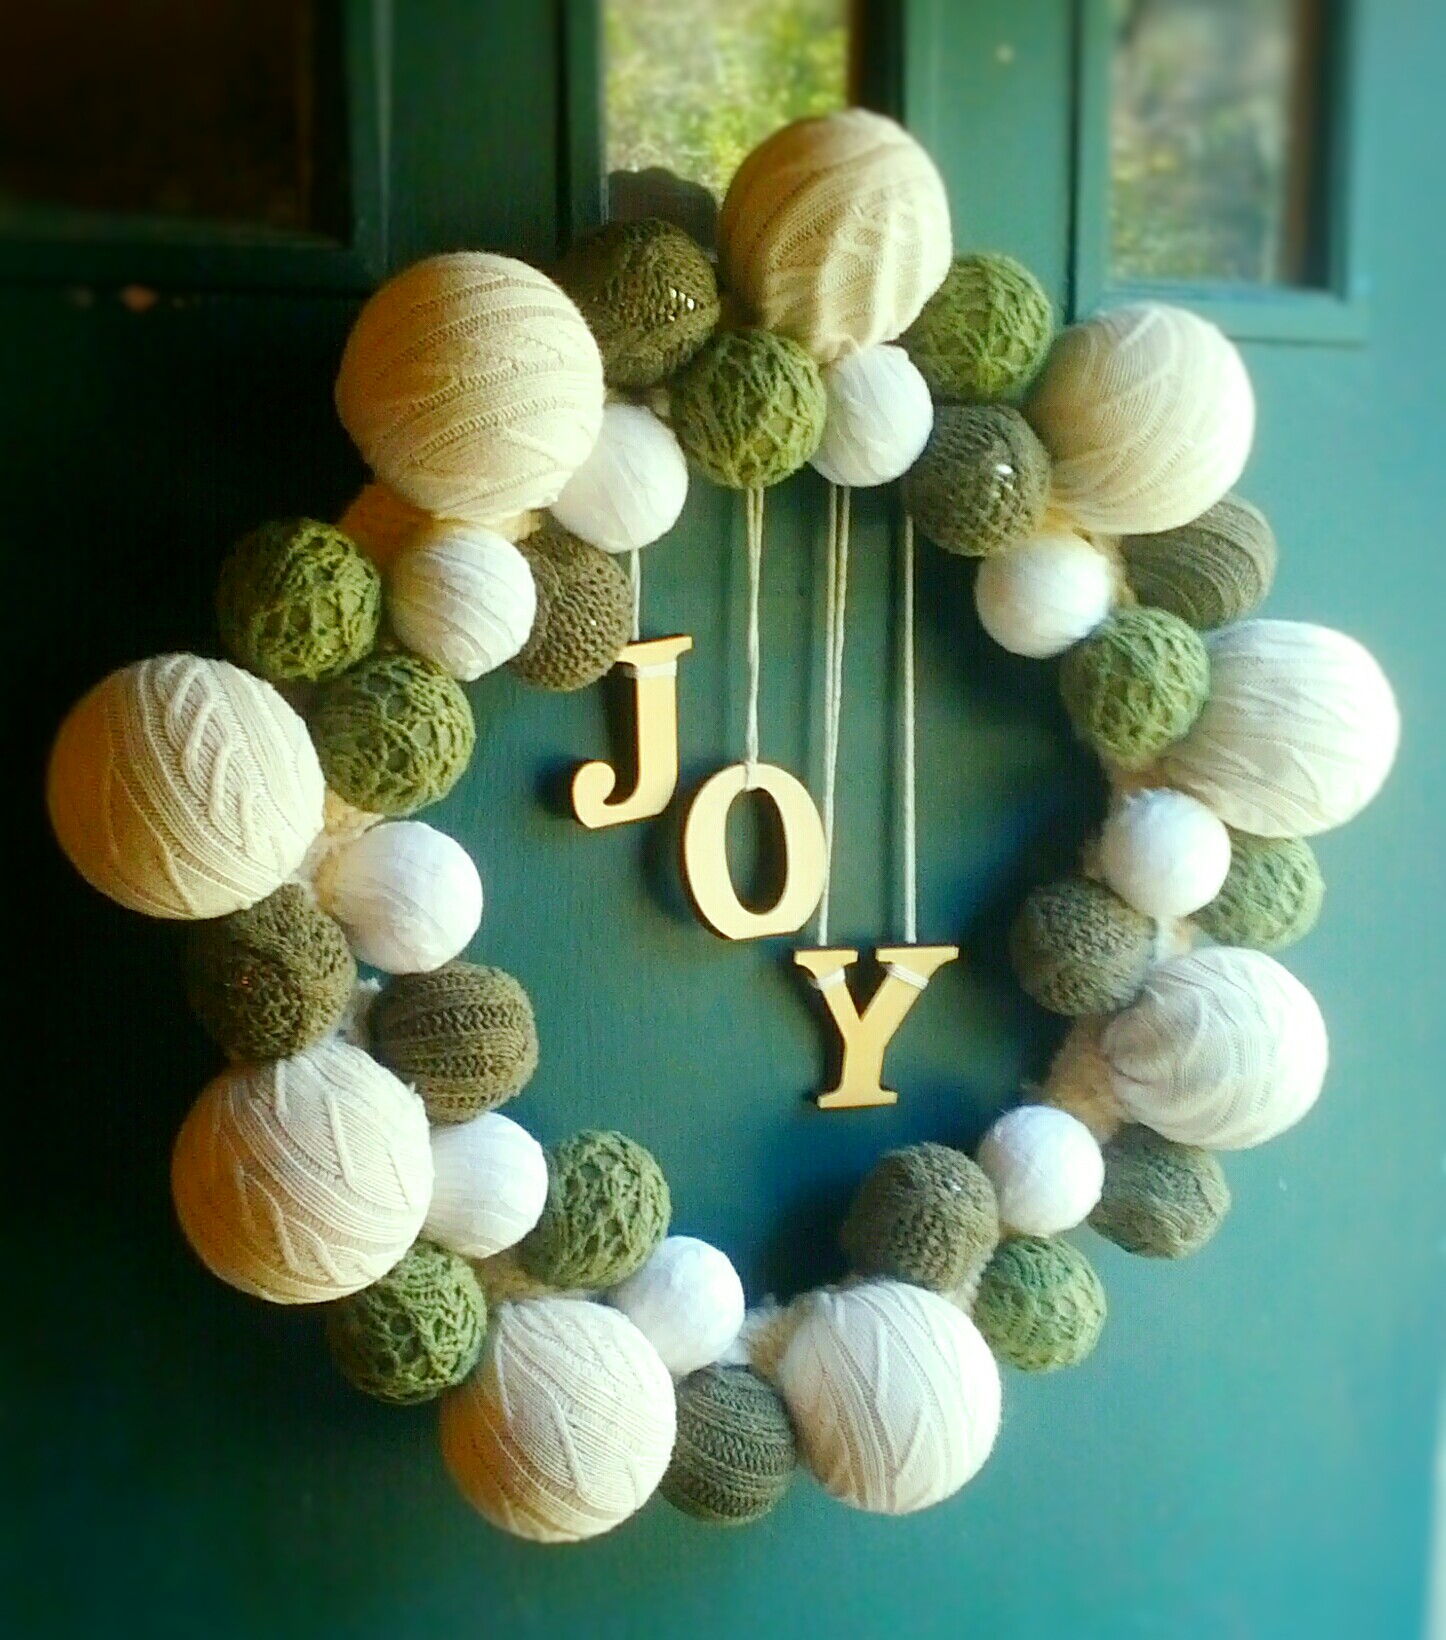 Handmade Sweater Ball Christmas Wreath by Shalom Schultz Designs. Recycled holiday decorating.